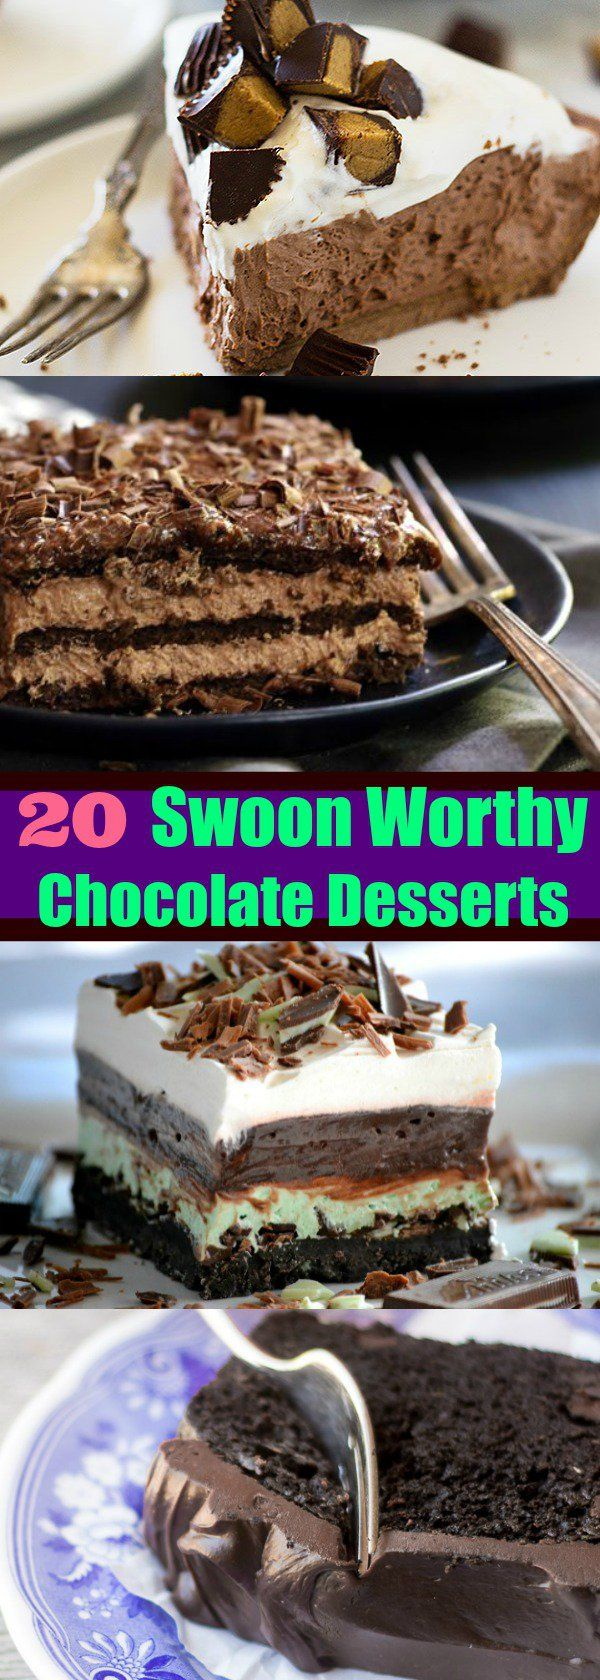 20 Swoon-Worthy Chocolate Desserts